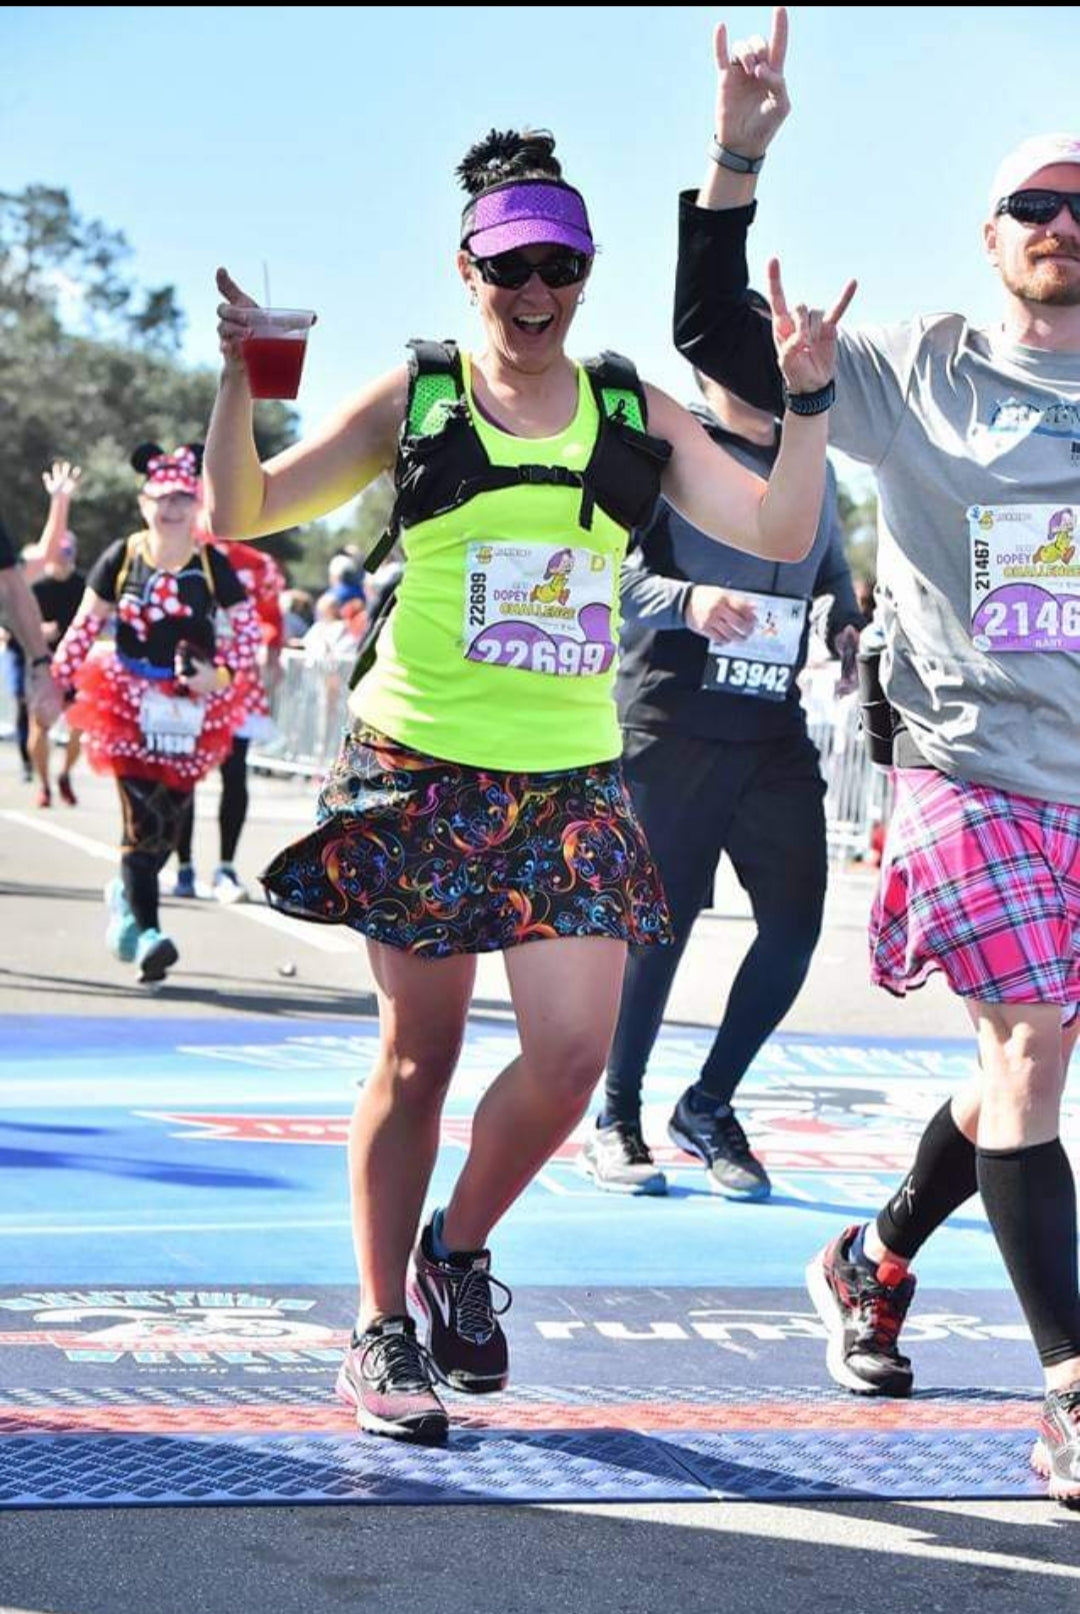 Melissa Marowelli finishing a race with drink in hand wearing a Bolder Athletic Wear skirt